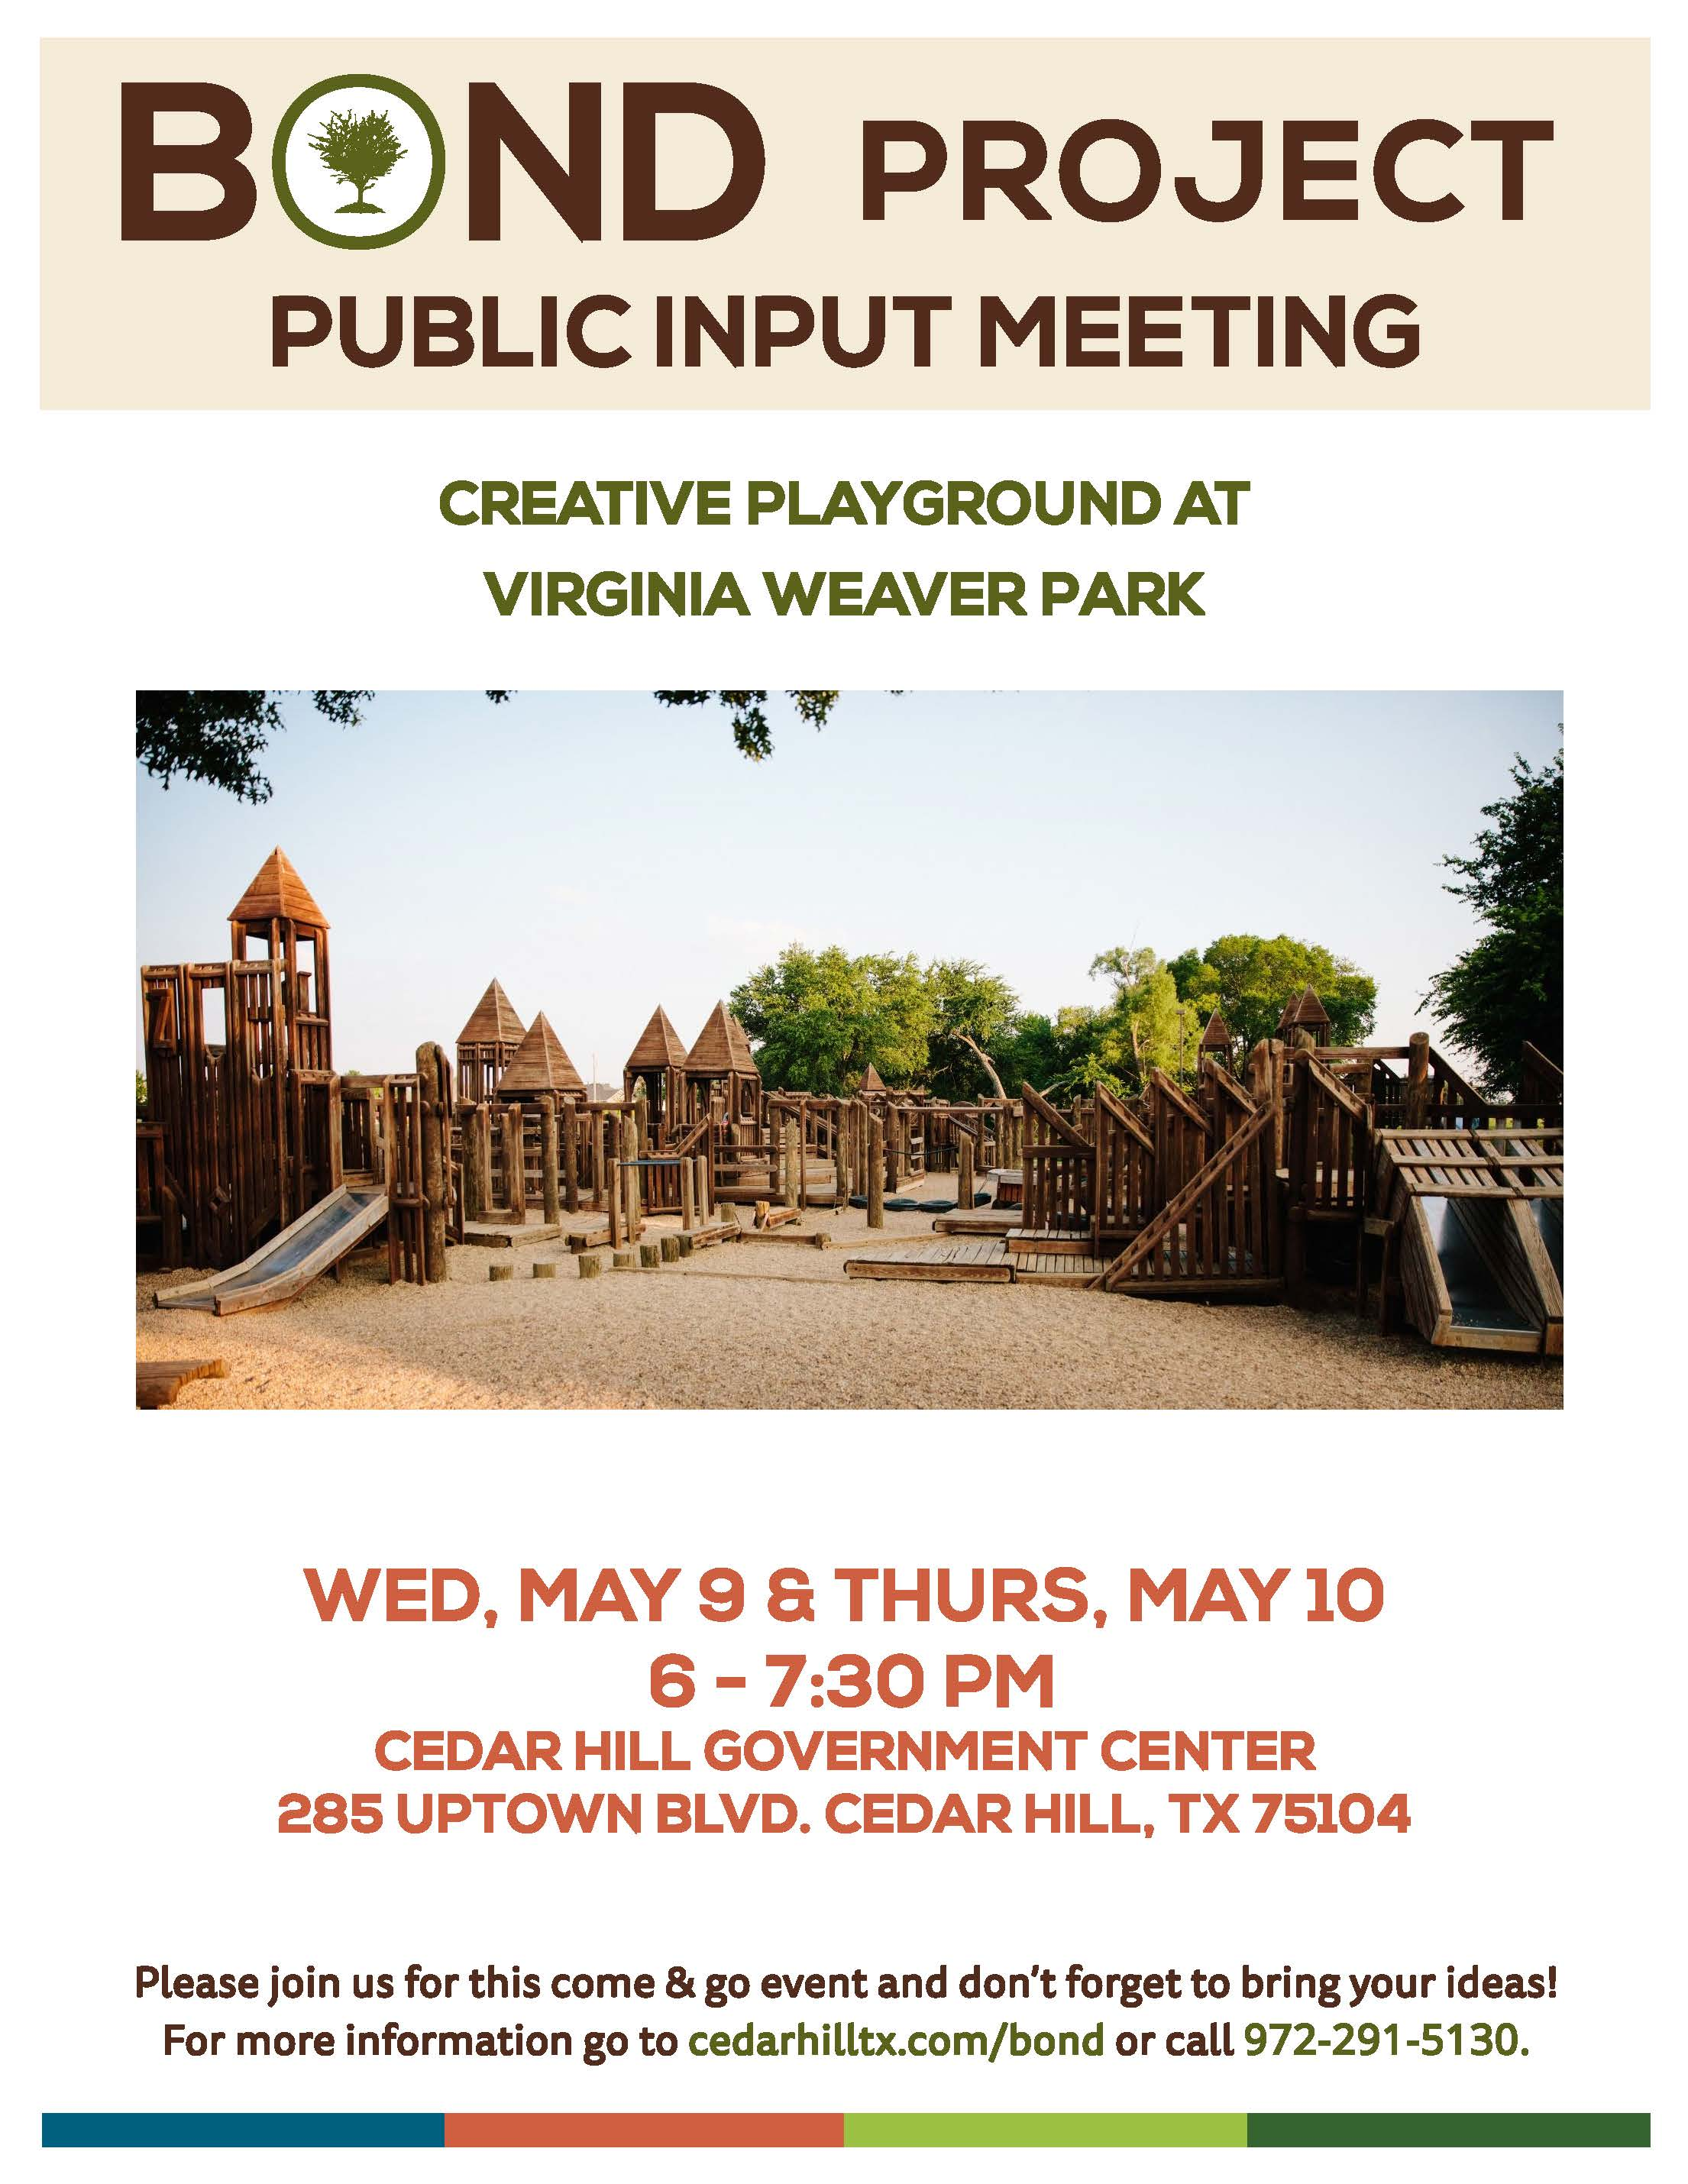 Public Input Meeting for Creative Playground on May 9 and 10 from 6 to 7:30 p.m. at the Cedar Hill G